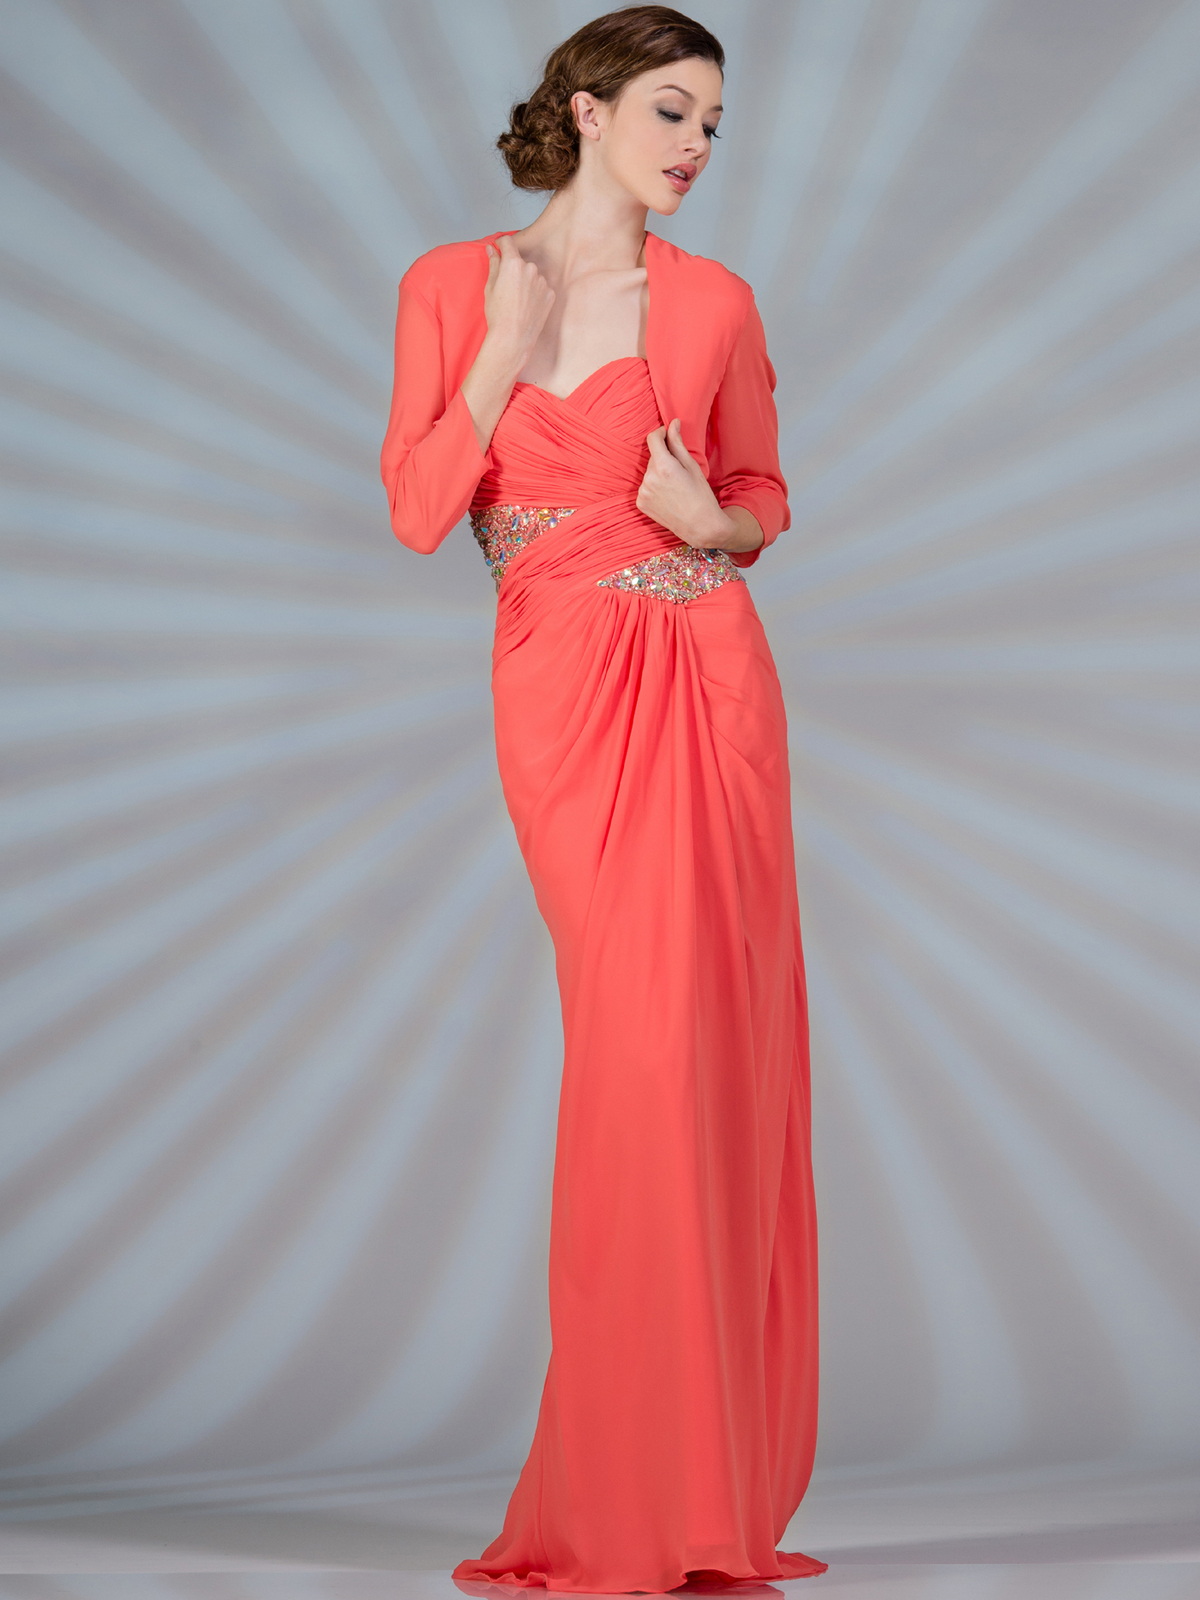 Ruched Jeweled Chiffon Evening Dress with Bolero - Sung Boutique L.A.